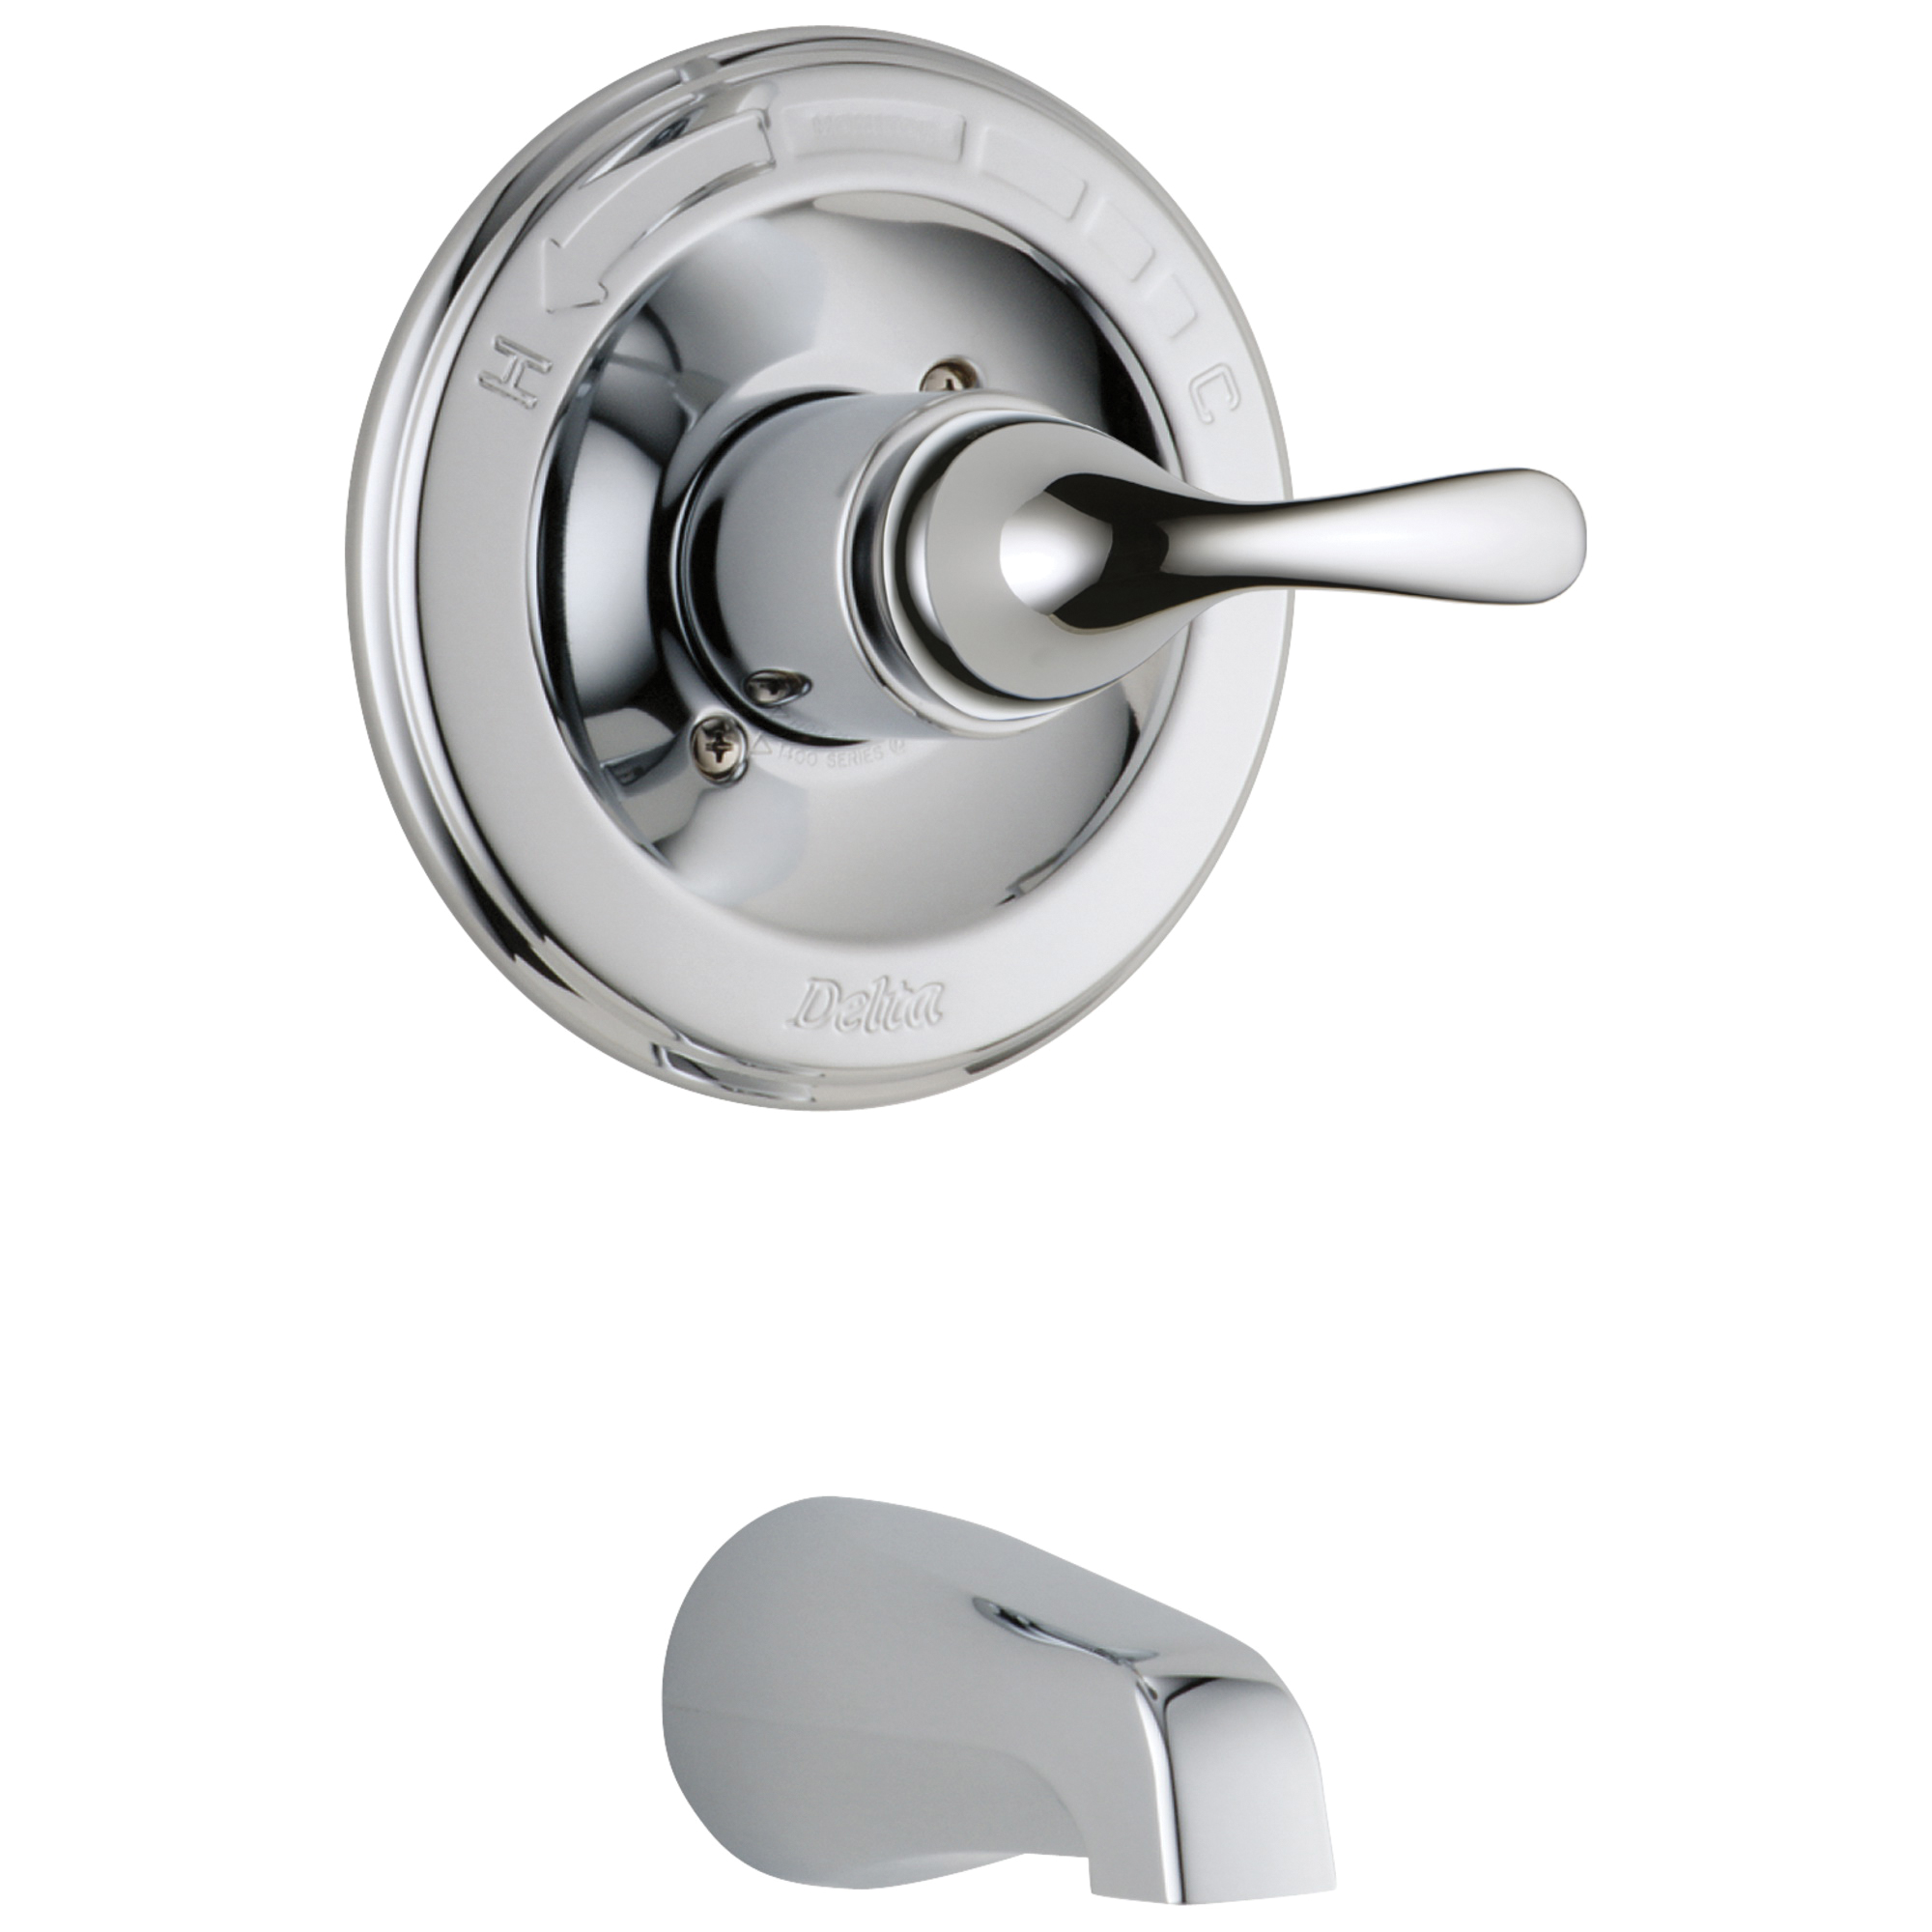 DELTA® T13120 Monitor® 13 Classic 1-Function Wall Mount Tub Trim, 7 gpm, Chrome Plated, 1 Handles, Hand Shower Yes/No: No, Domestic